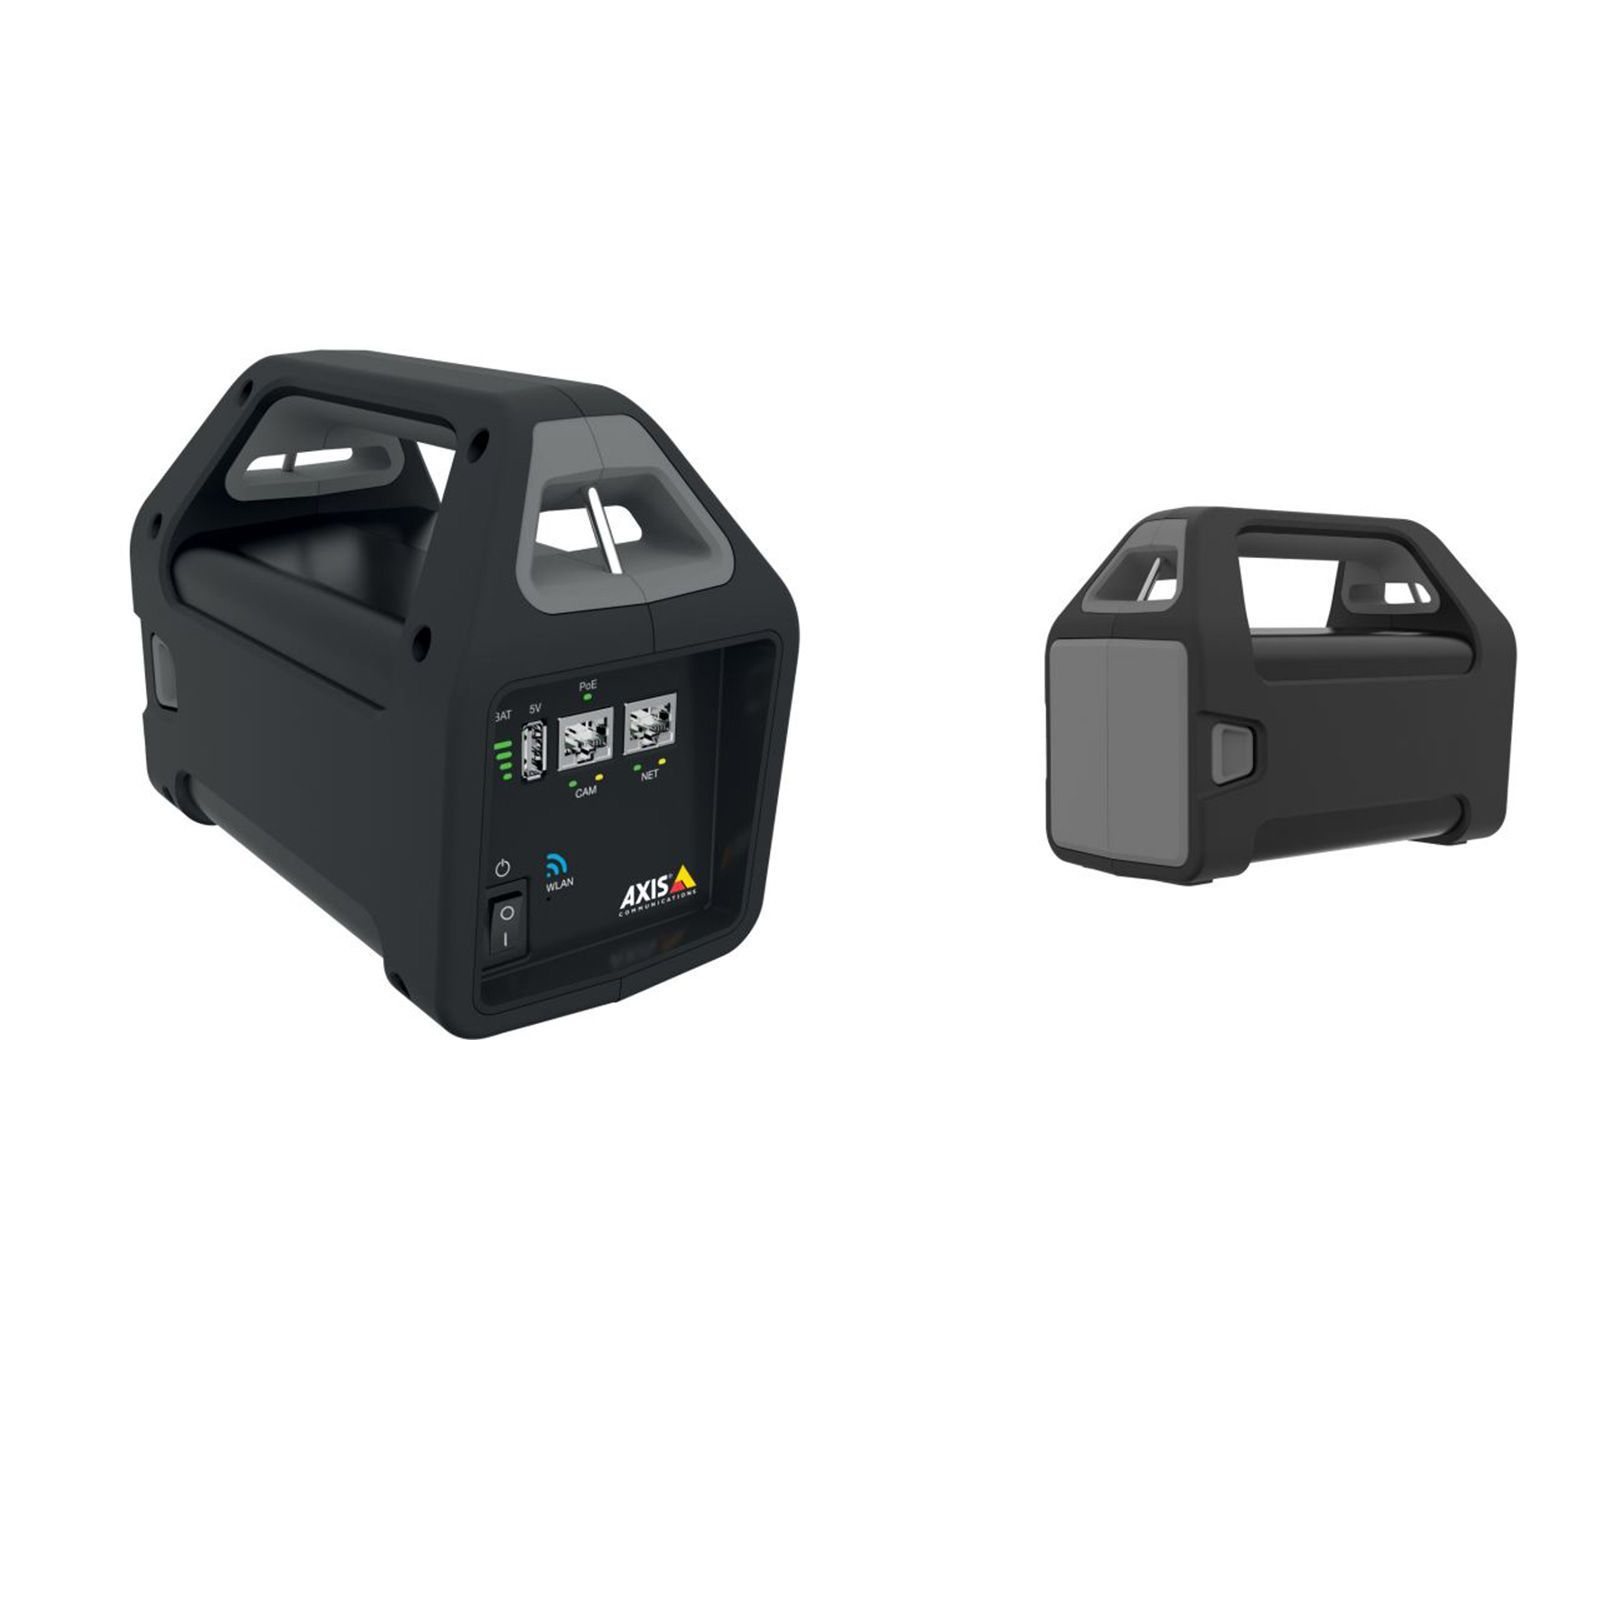 Batterie portable Axis | T8415 | PoE | Wifi